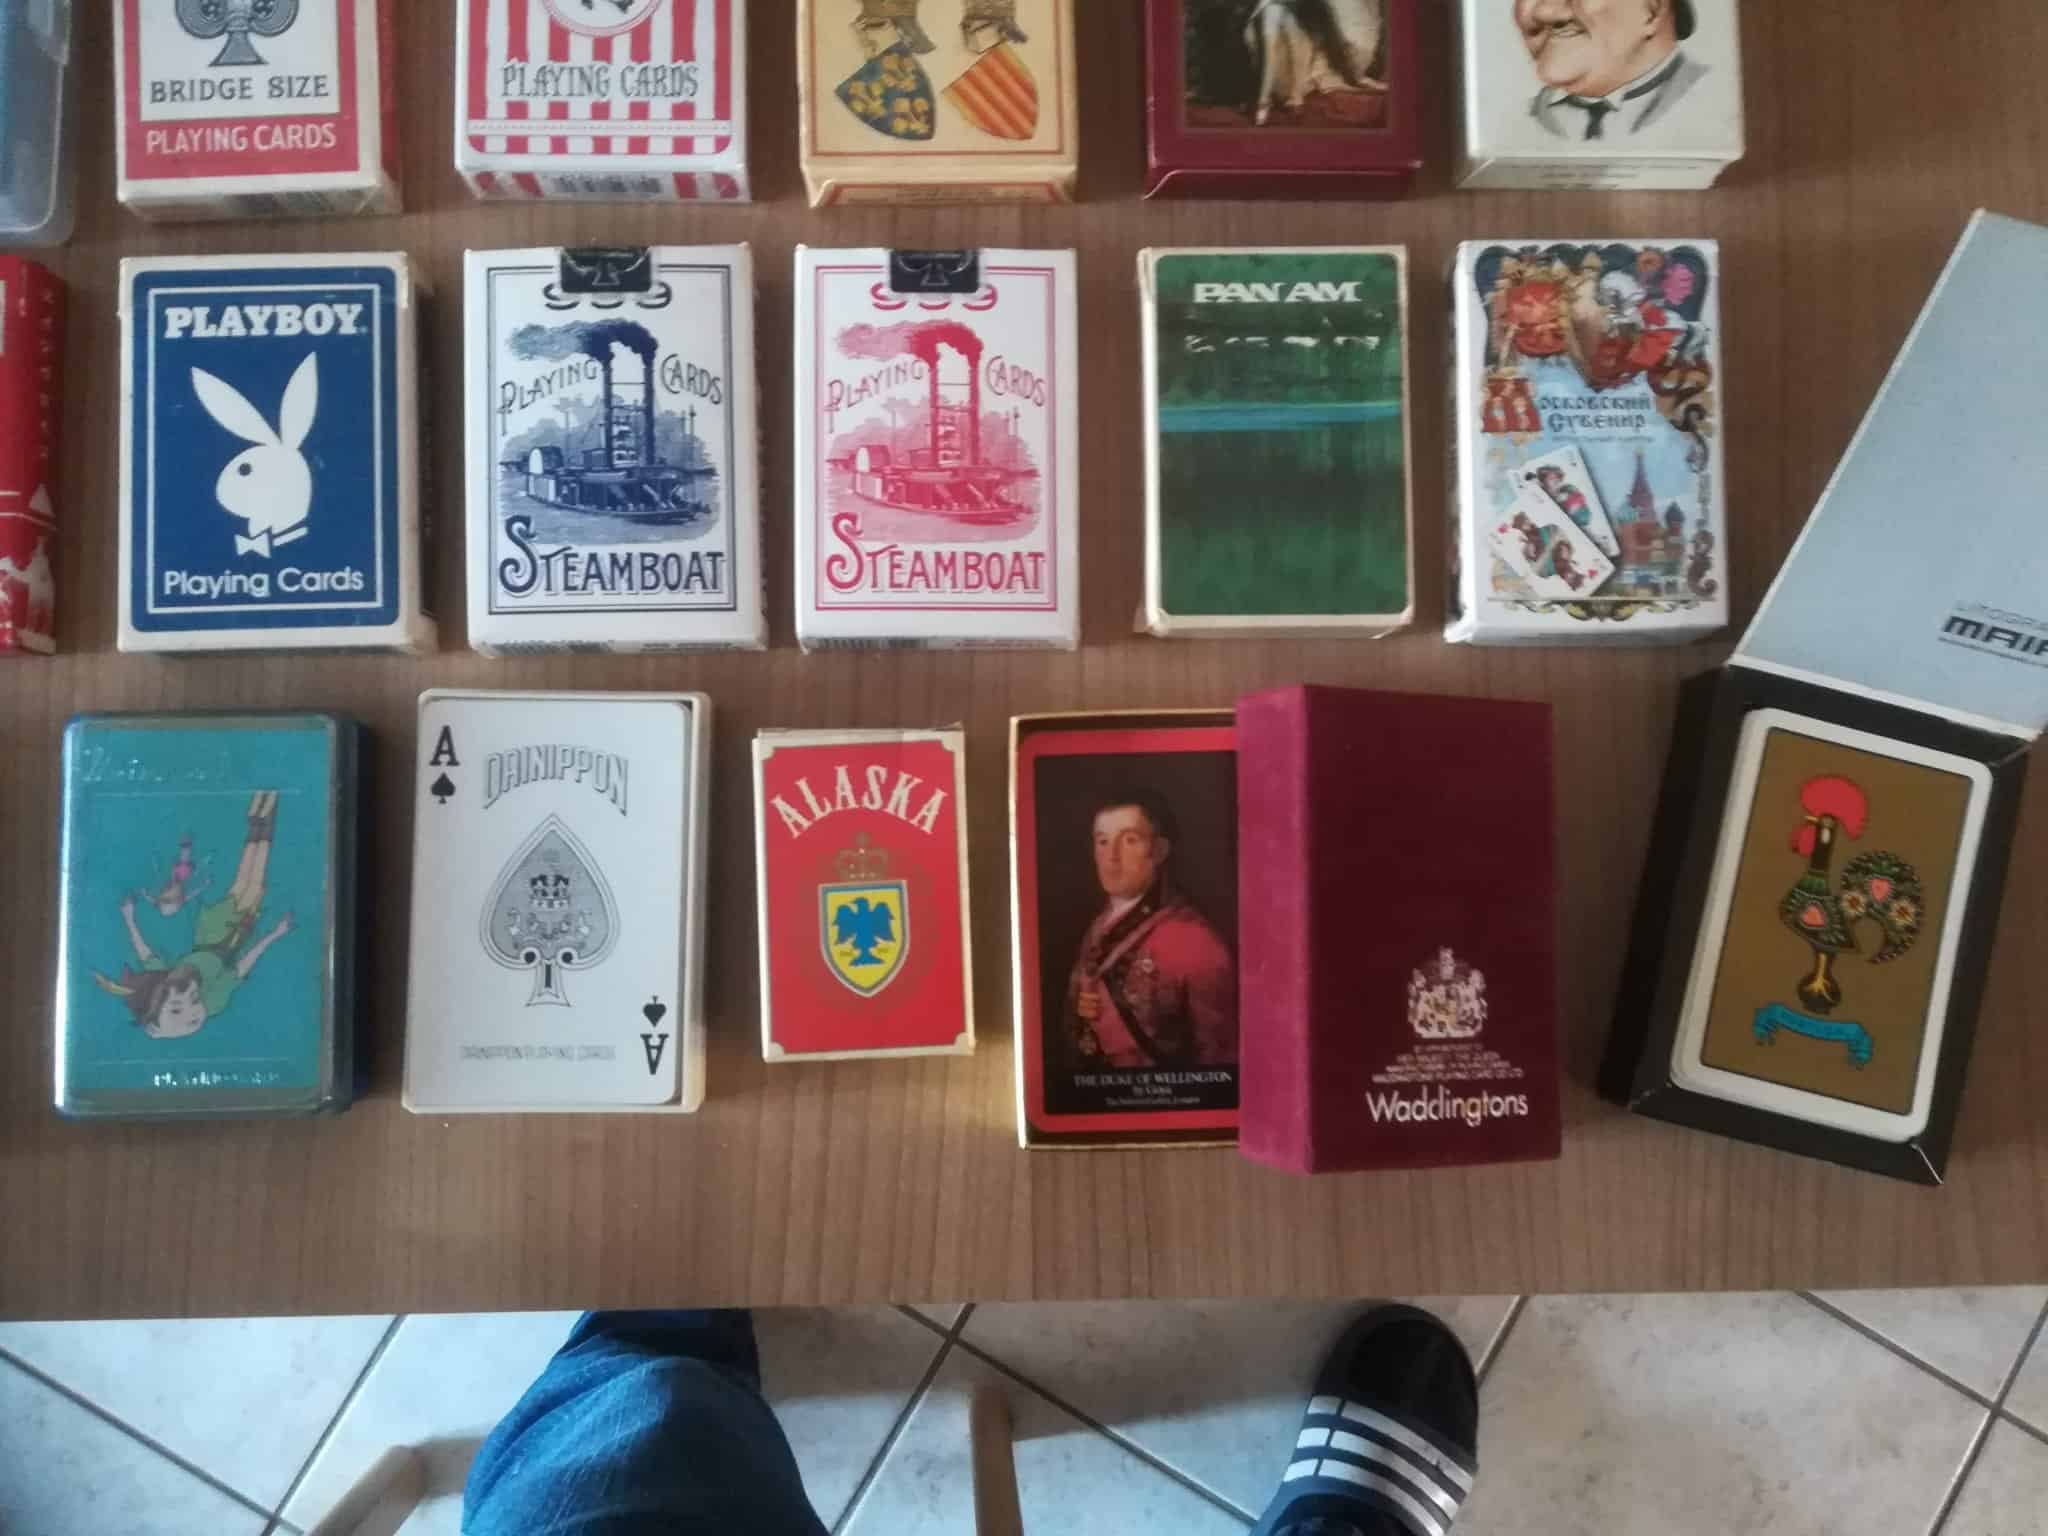 Hi, I would like to have estimates to sell all those card games that I don't use in my collect